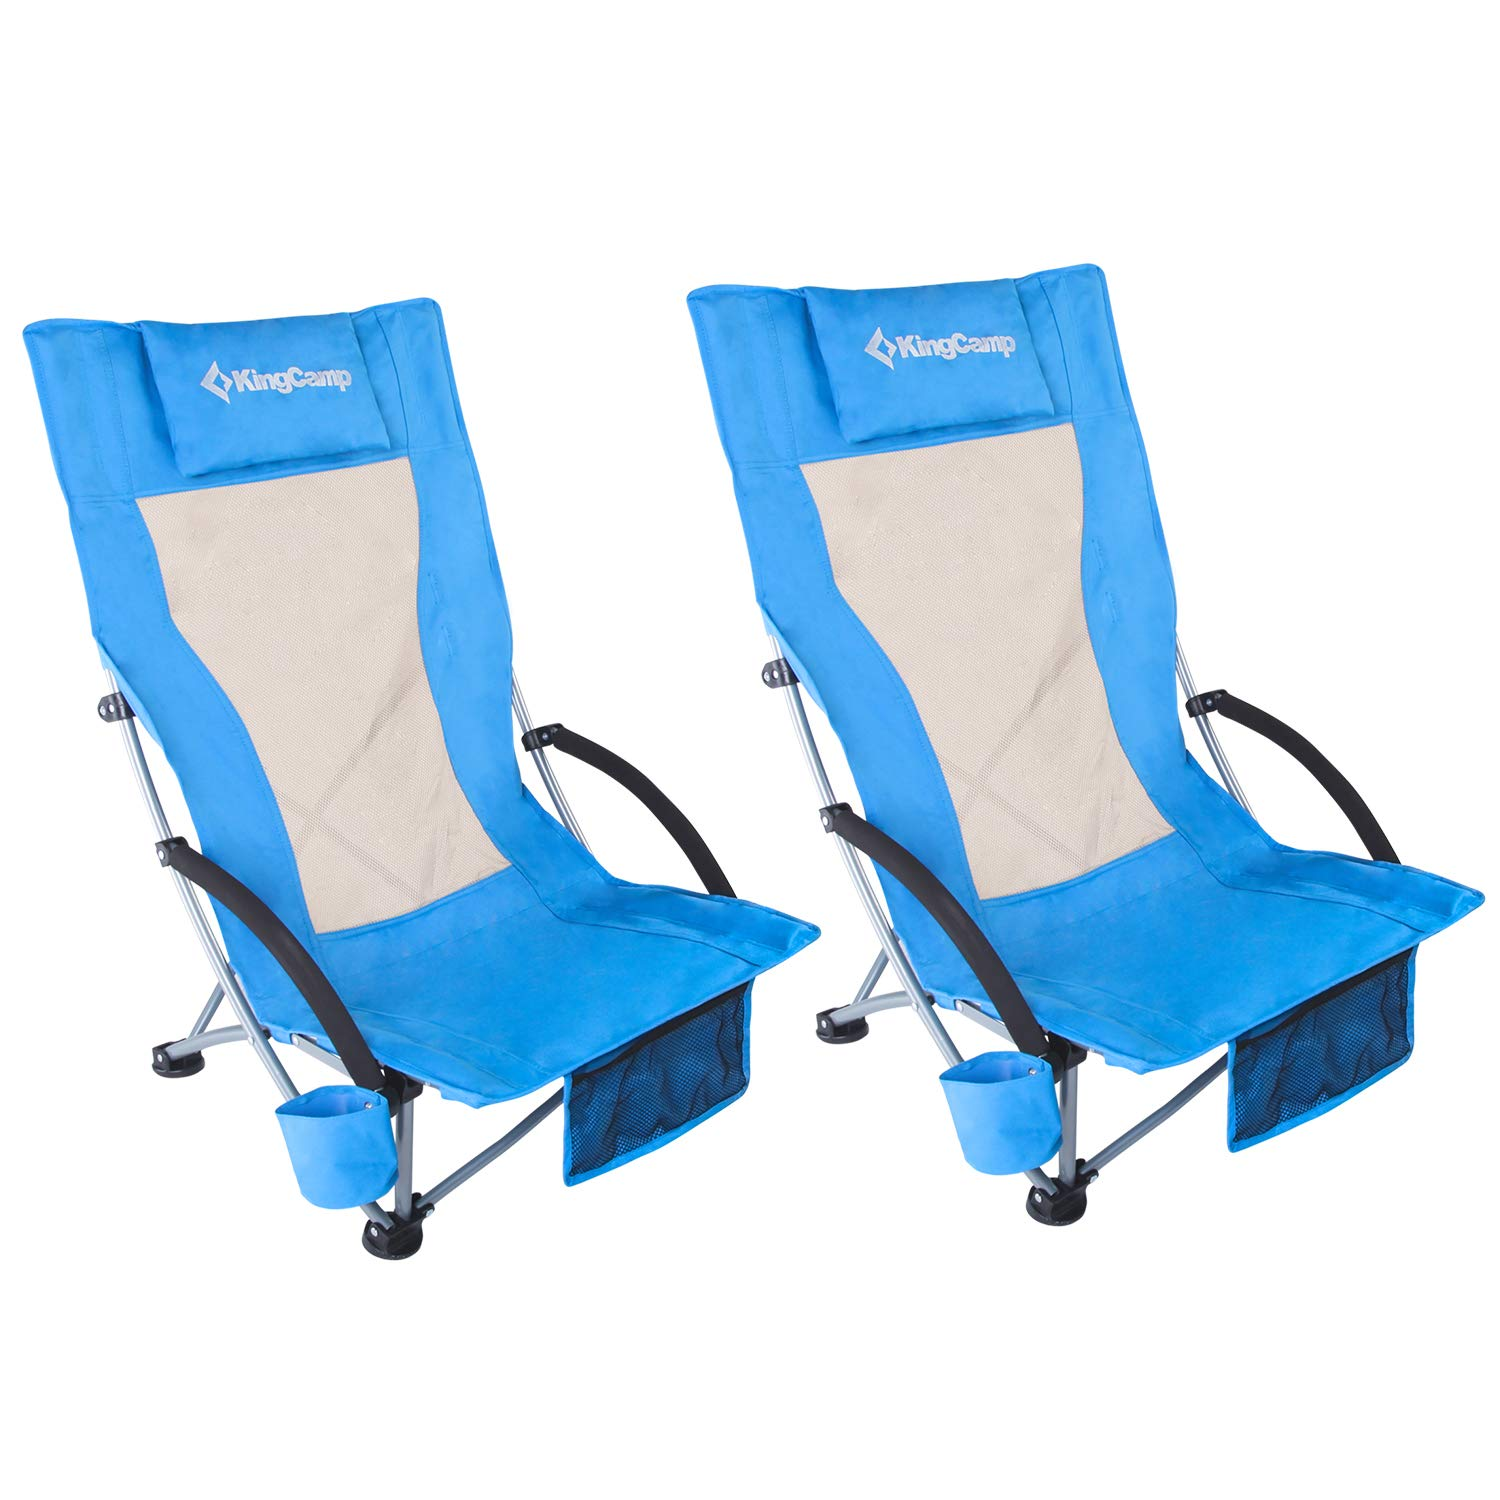 KingCamp Low Sling Beach Camping Concert Folding Chair, Low and High Mesh Back Two Versions (Blue-High Back-2 Pack) by KingCamp